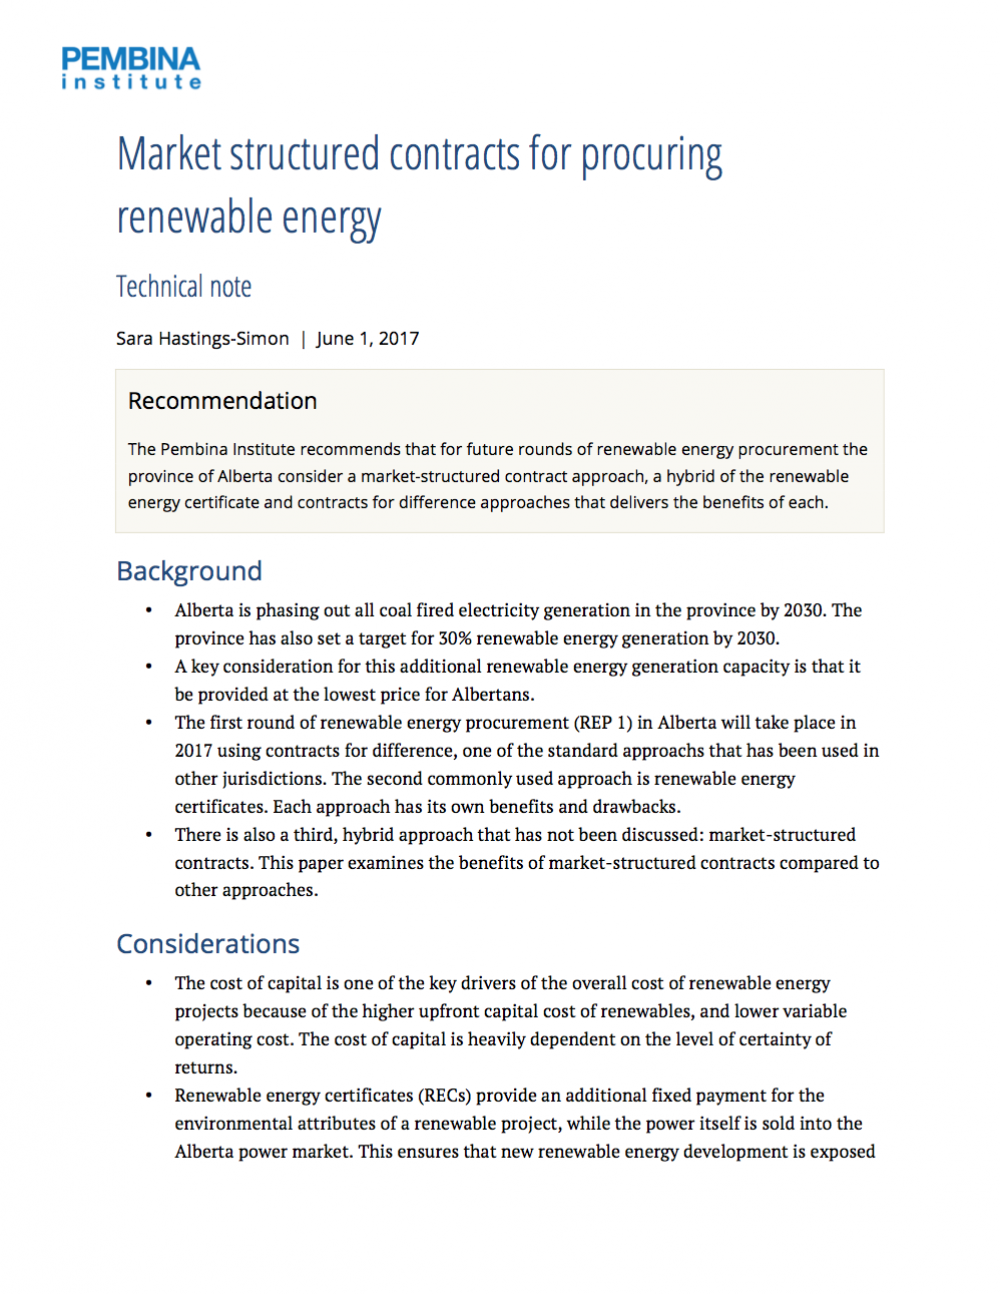 Market structured contracts for procuring renewable energy market structured contracts for procuring renewable energy publications pembina institute xflitez Gallery